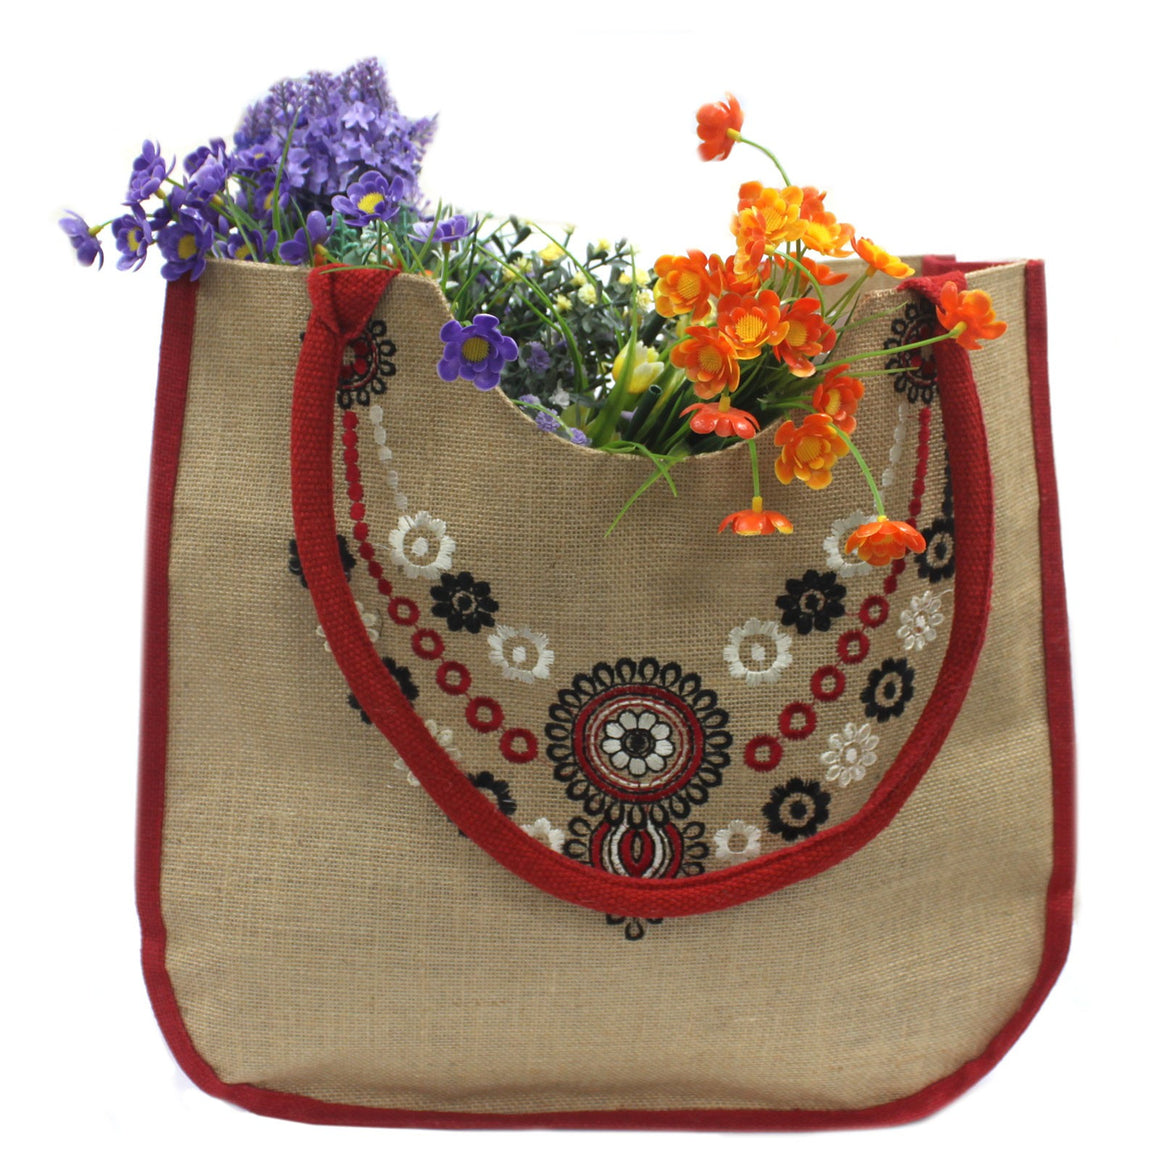 Bags, Jute Bags, Jute Shopping Bags, Posh Shopping Bag, Shopping